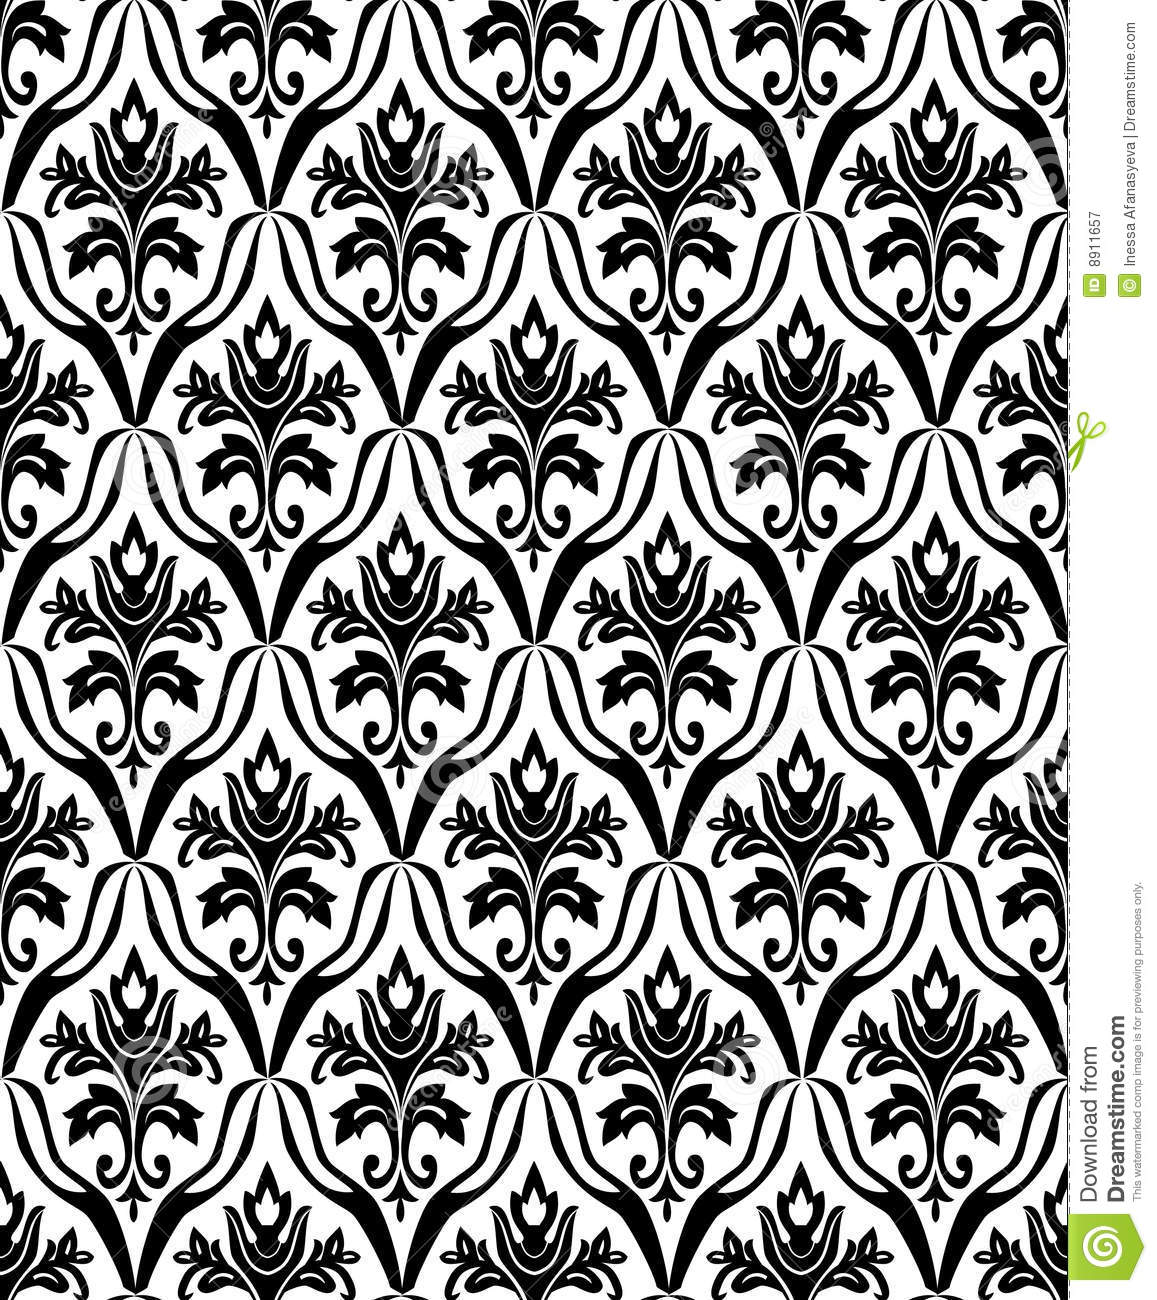 Black And White Photography Pattern : Black and white seamless pattern stock vector